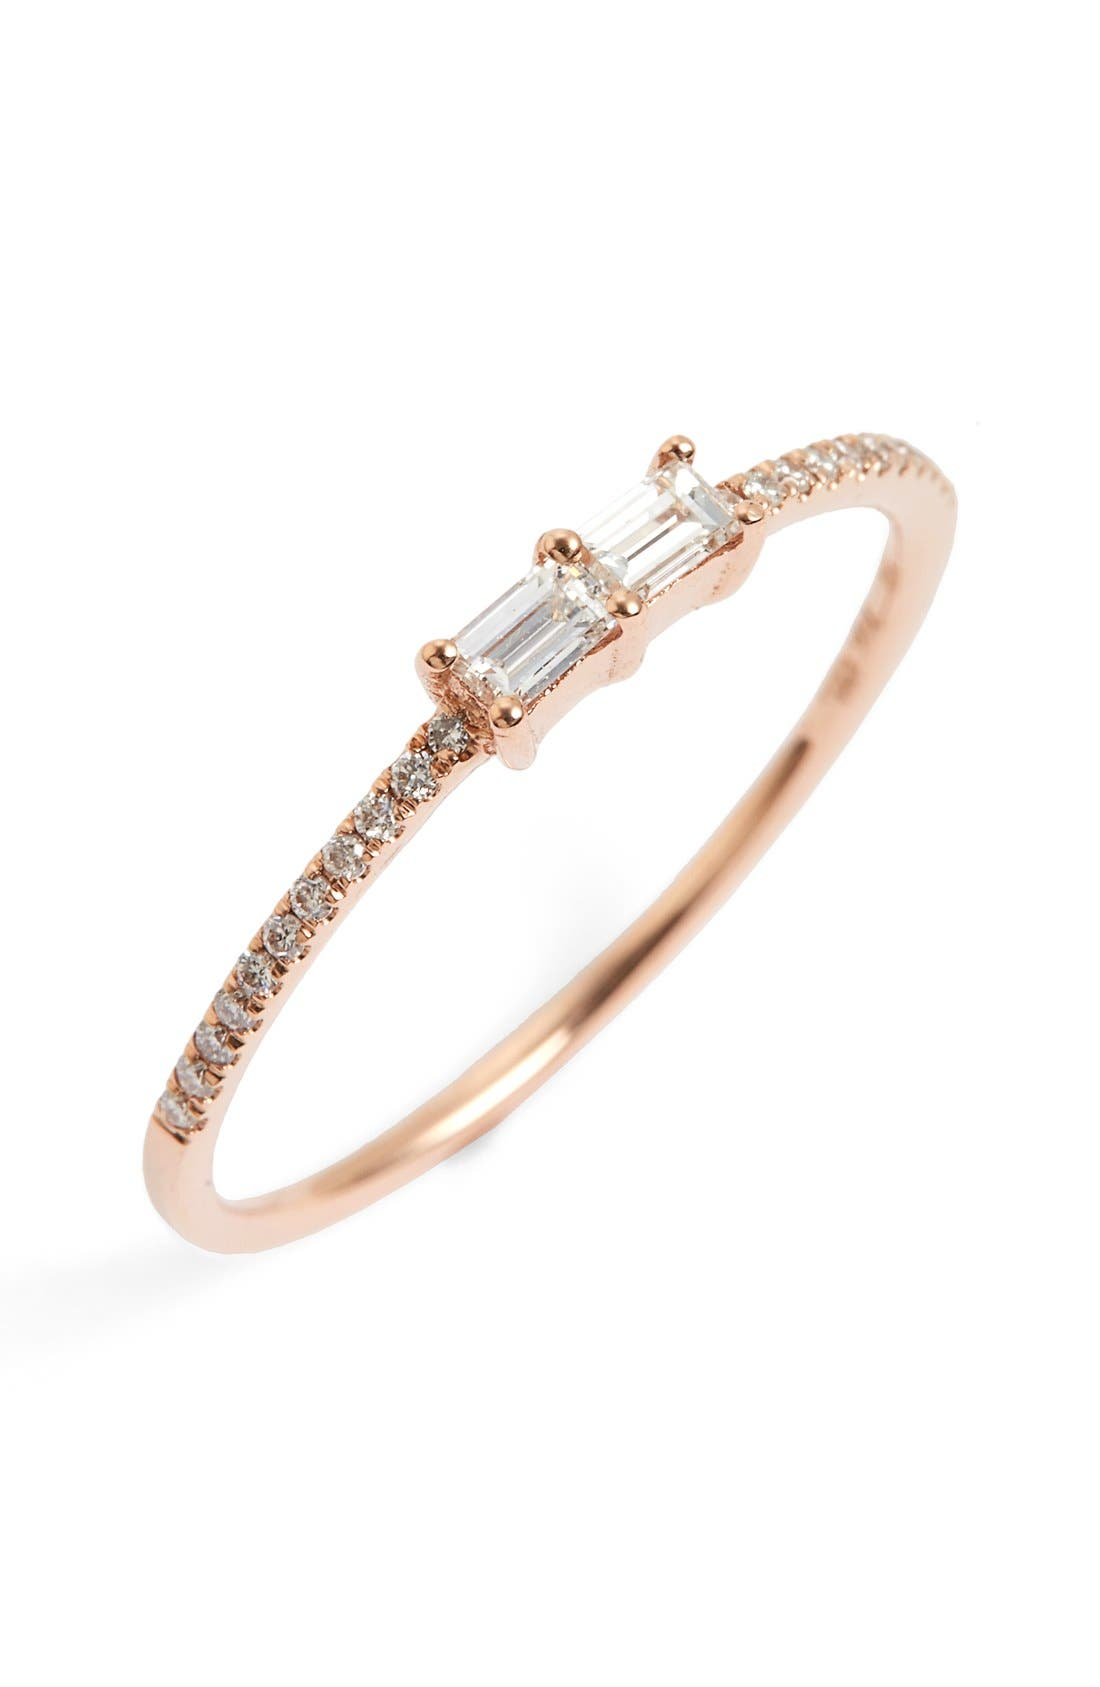 Double Baguette Diamond Ring,                         Main,                         color, Rose Gold